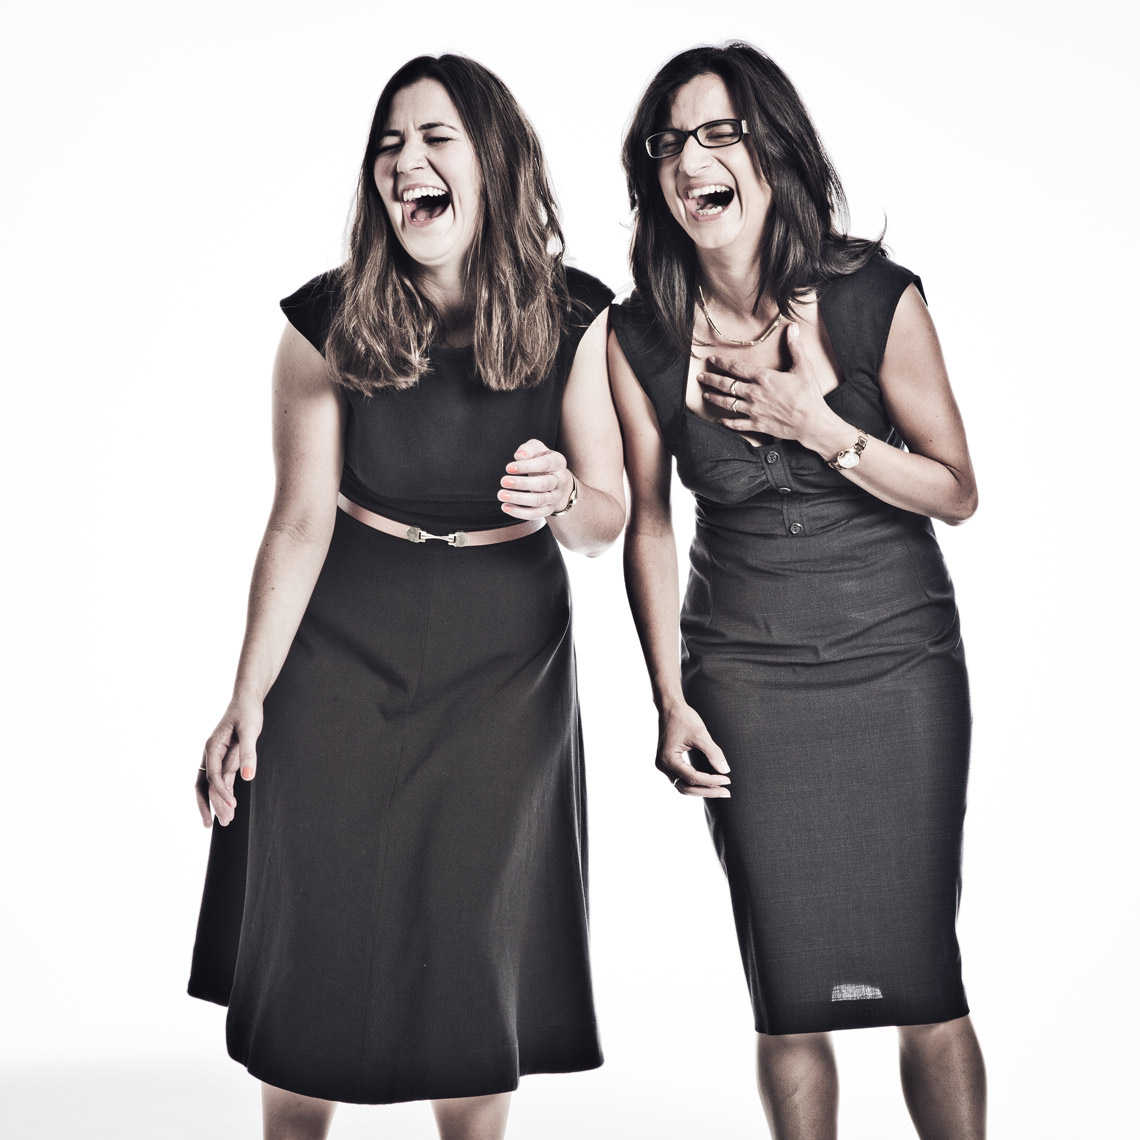 Laughing office women